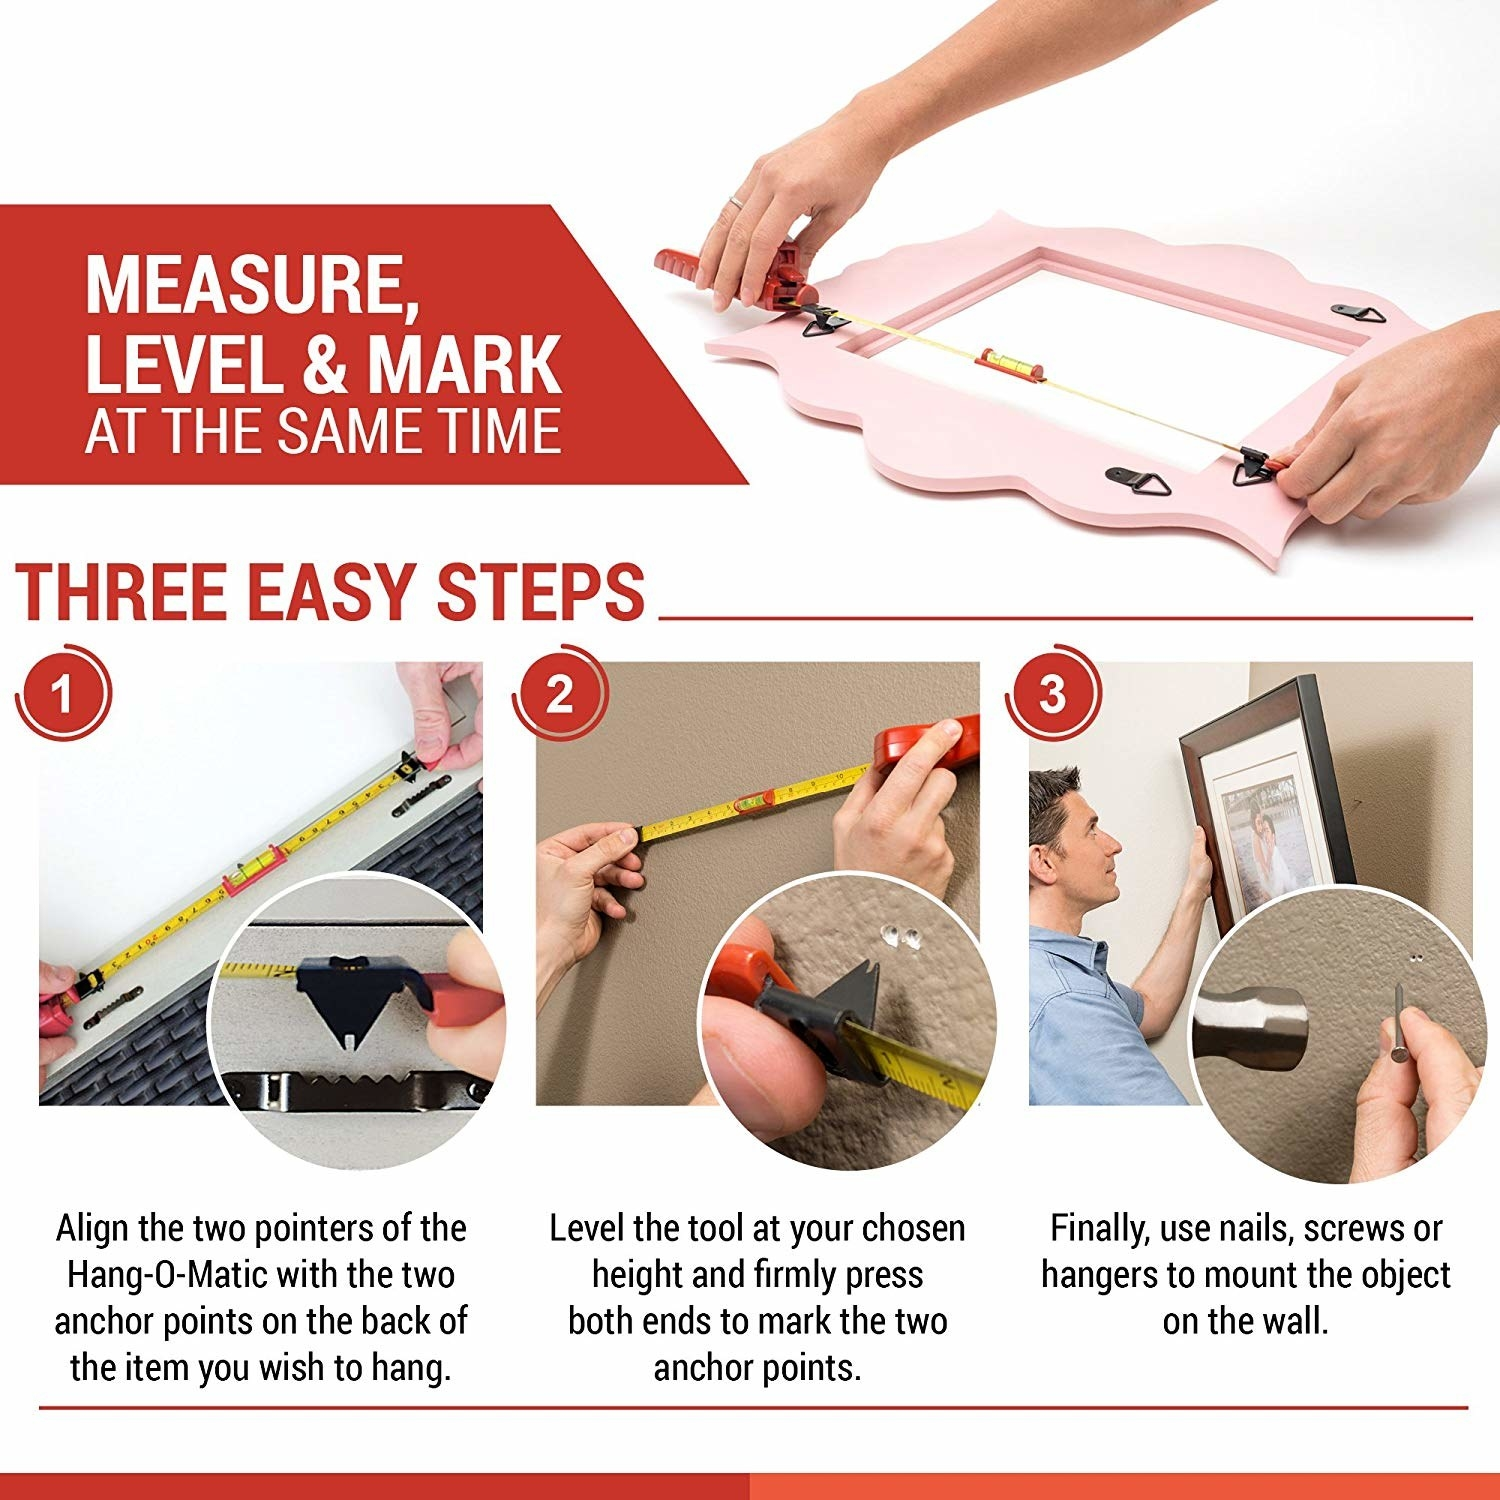 The steps of using the kit